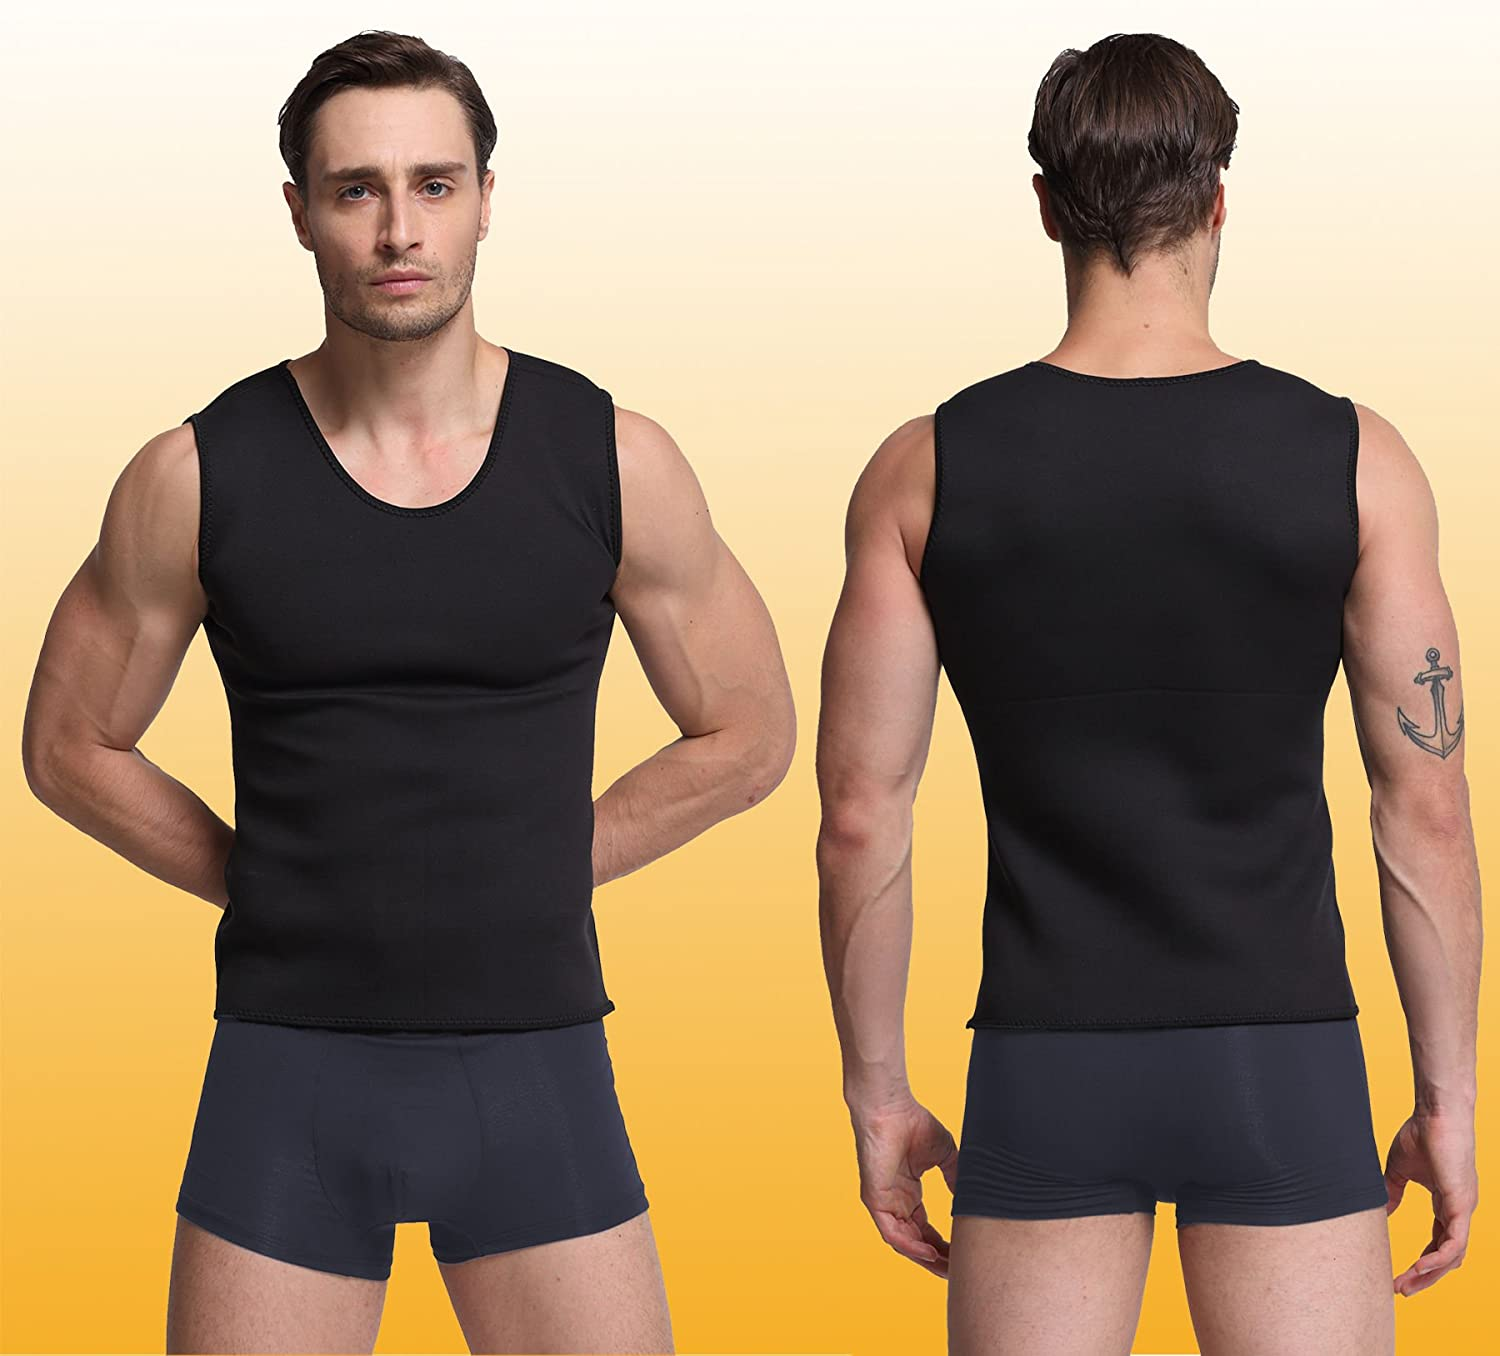 Glamours Mens Body Shaper Vest Slimming Sweat Tummy Fat Burner Tank Top for Weight Loss